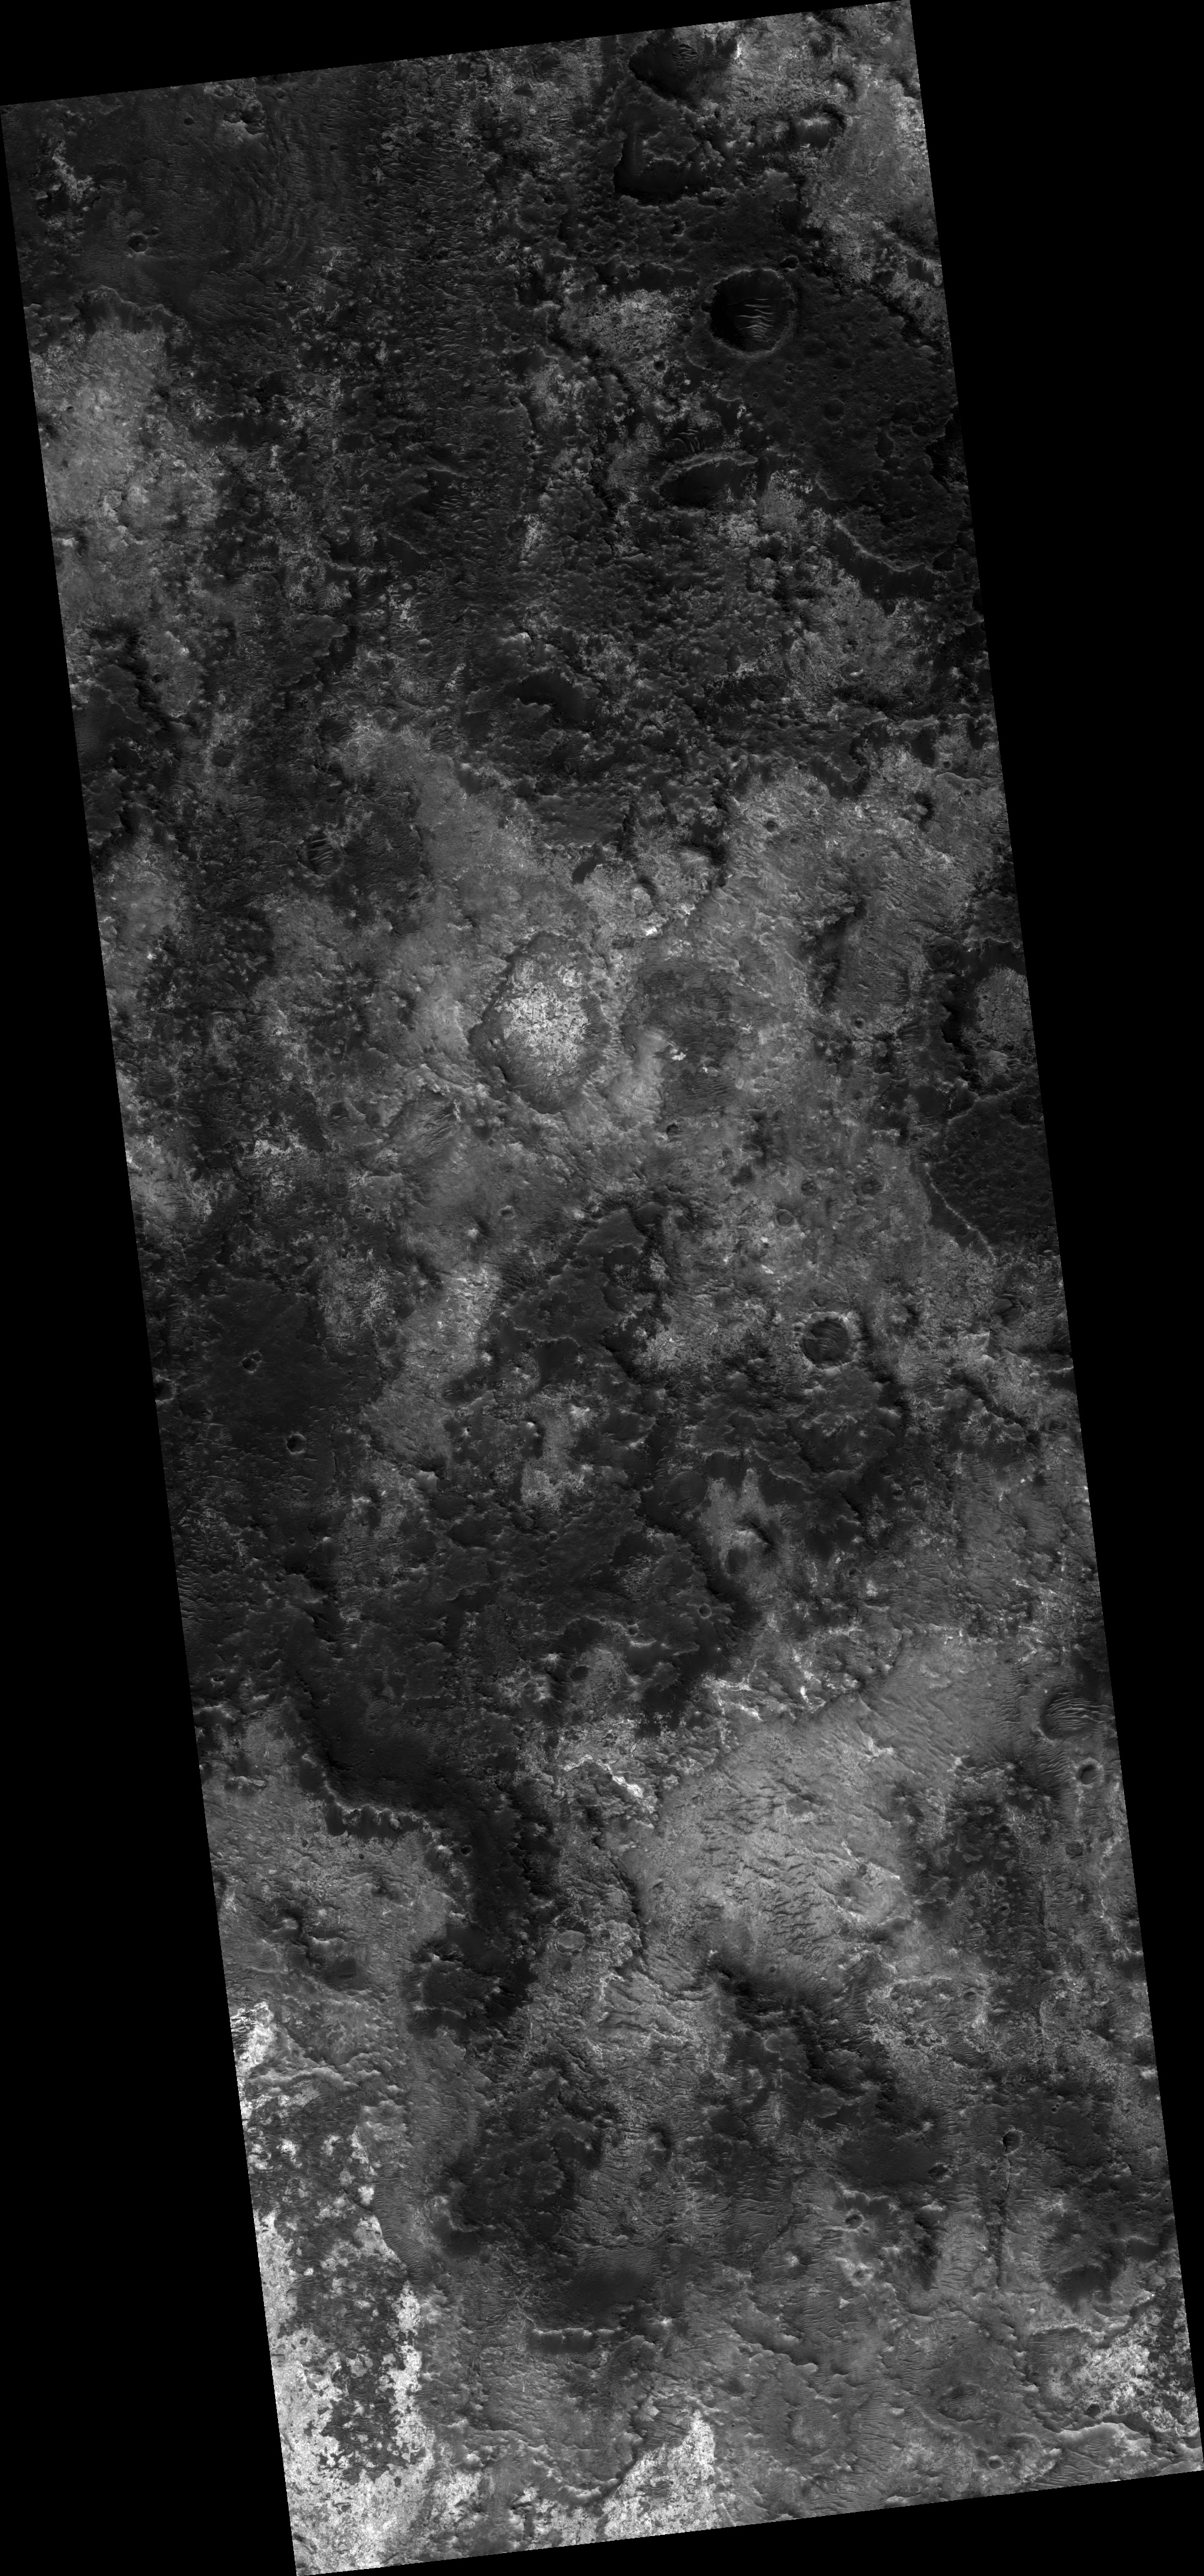 the mwarth vallis landing site As of march 2017, two candidate landing sites are being considered for the 2020 exomars mission as recommended by the landing site selection working group, these are regions lying in oxia planum (selected in 2015) and mawrth vallis (selected in march 2017) oxia planum contains one of the largest .